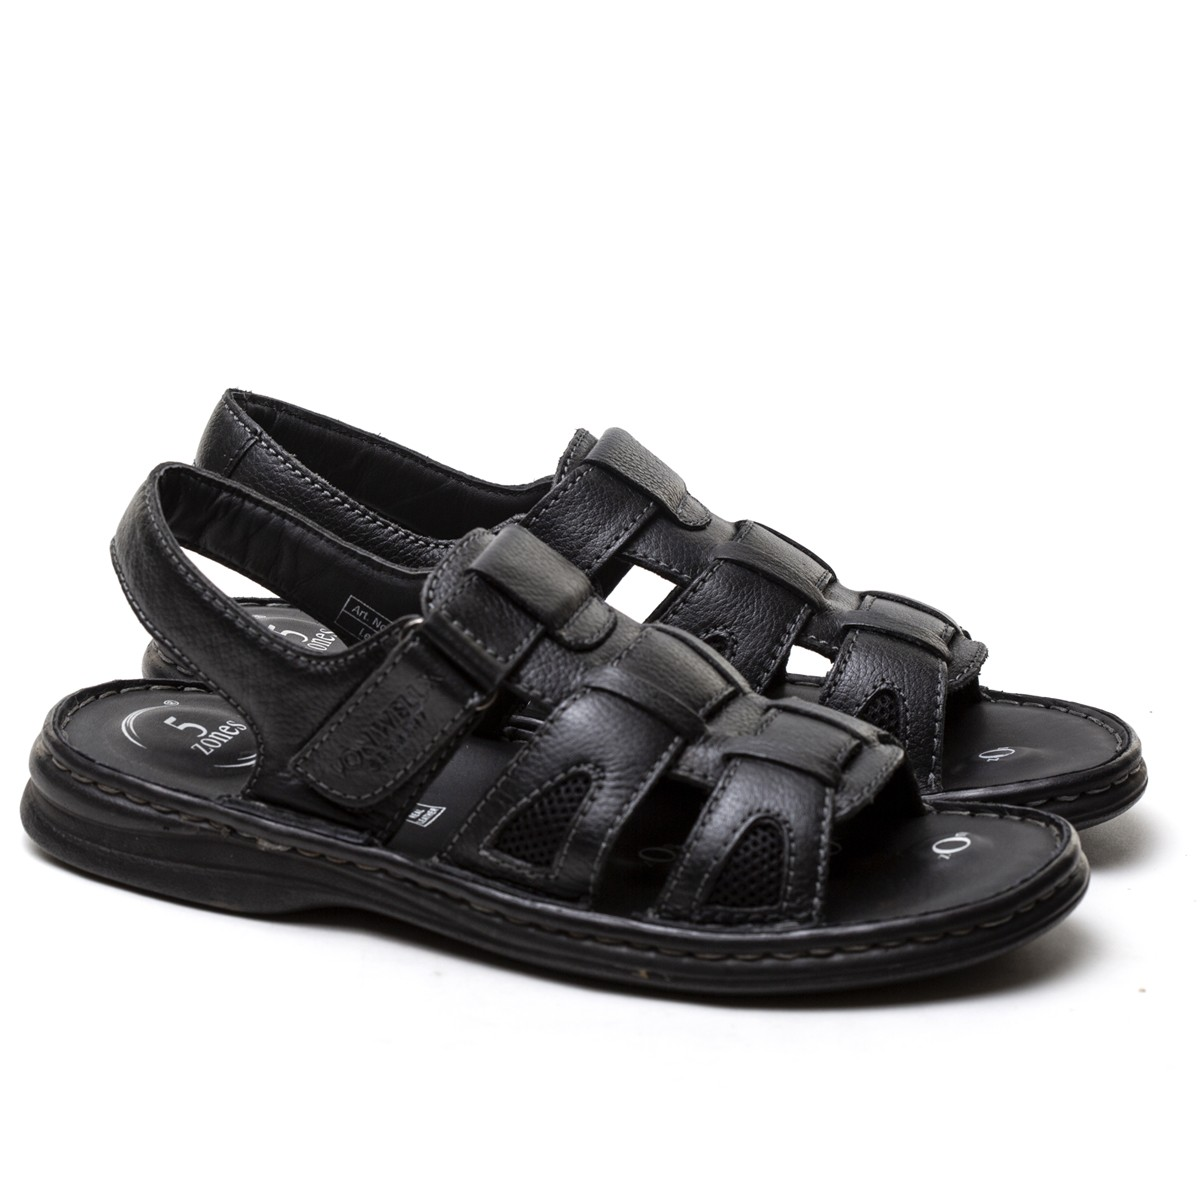 Buy Von Wellx Germany Comfort Rhys Black Sandals Online in Bangalore